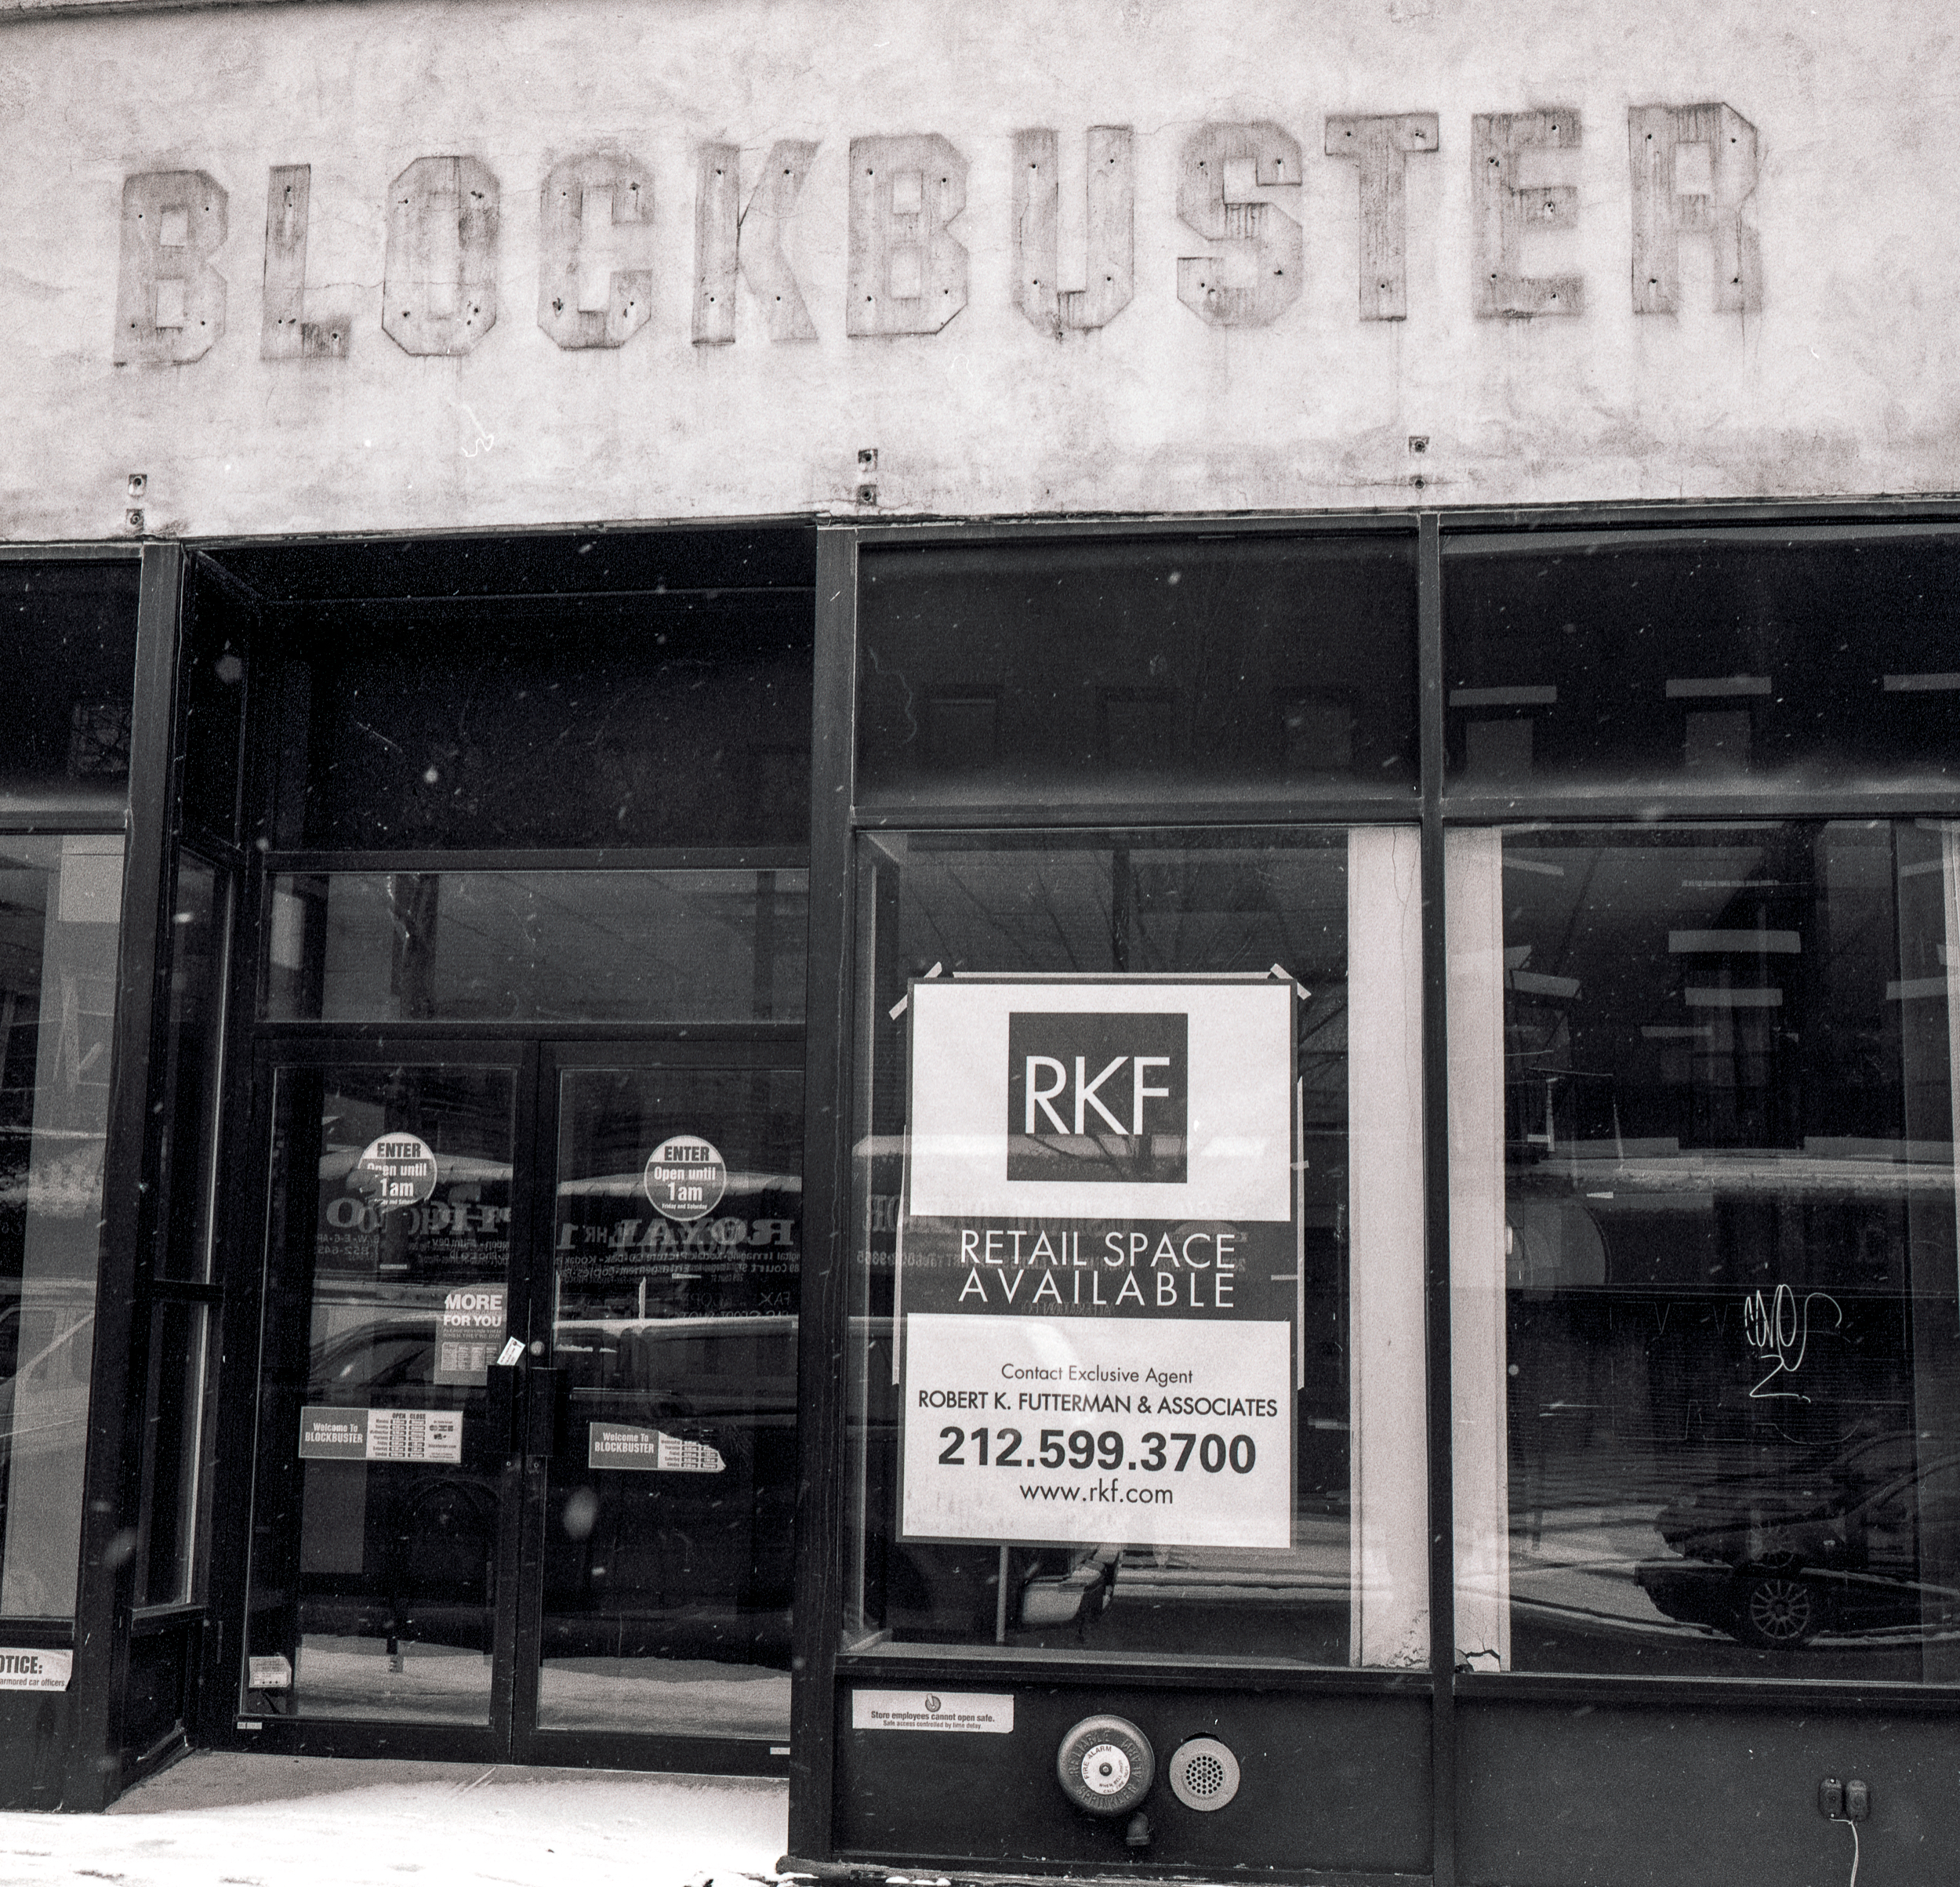 003_blockbuster_courtst_gone.jpg